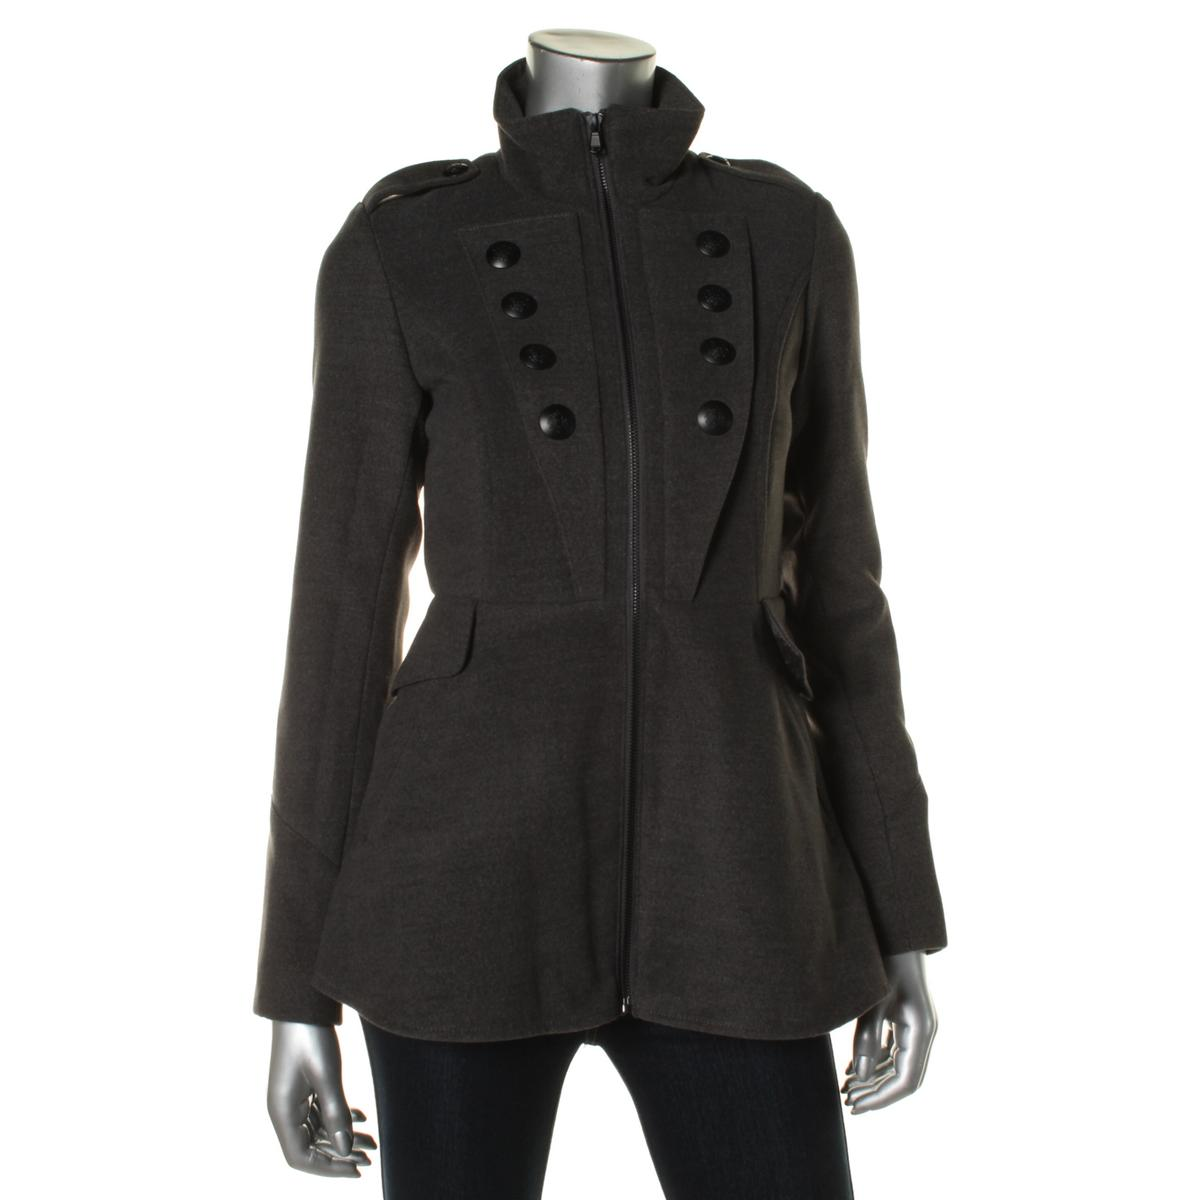 Find great deals on eBay for juniors military jacket. Shop with confidence.